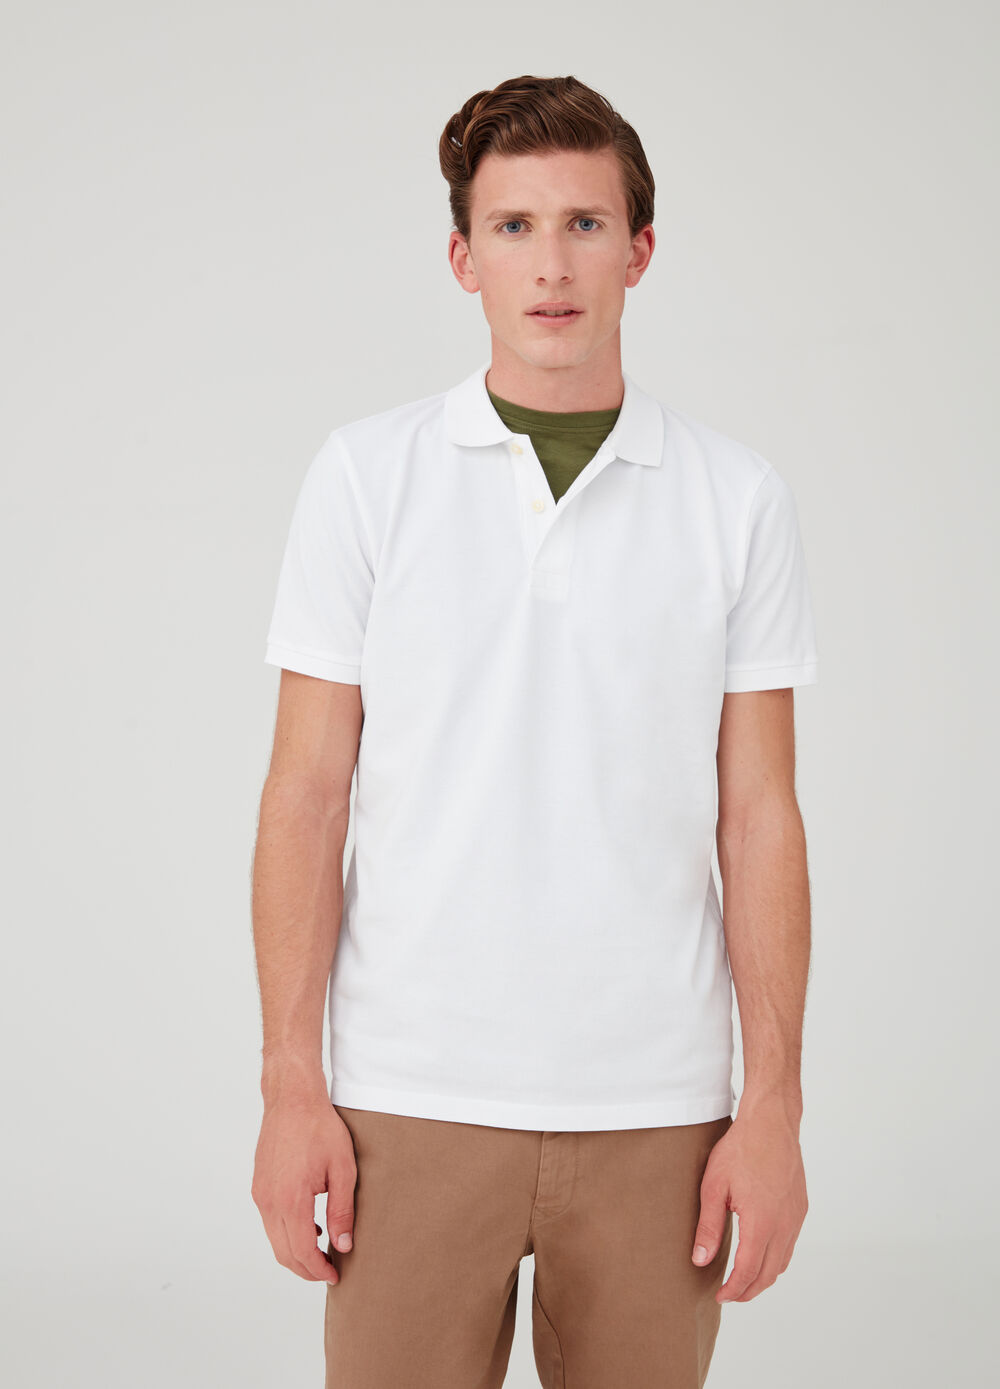 Solid colour polo shirt in double twill cotton piquet